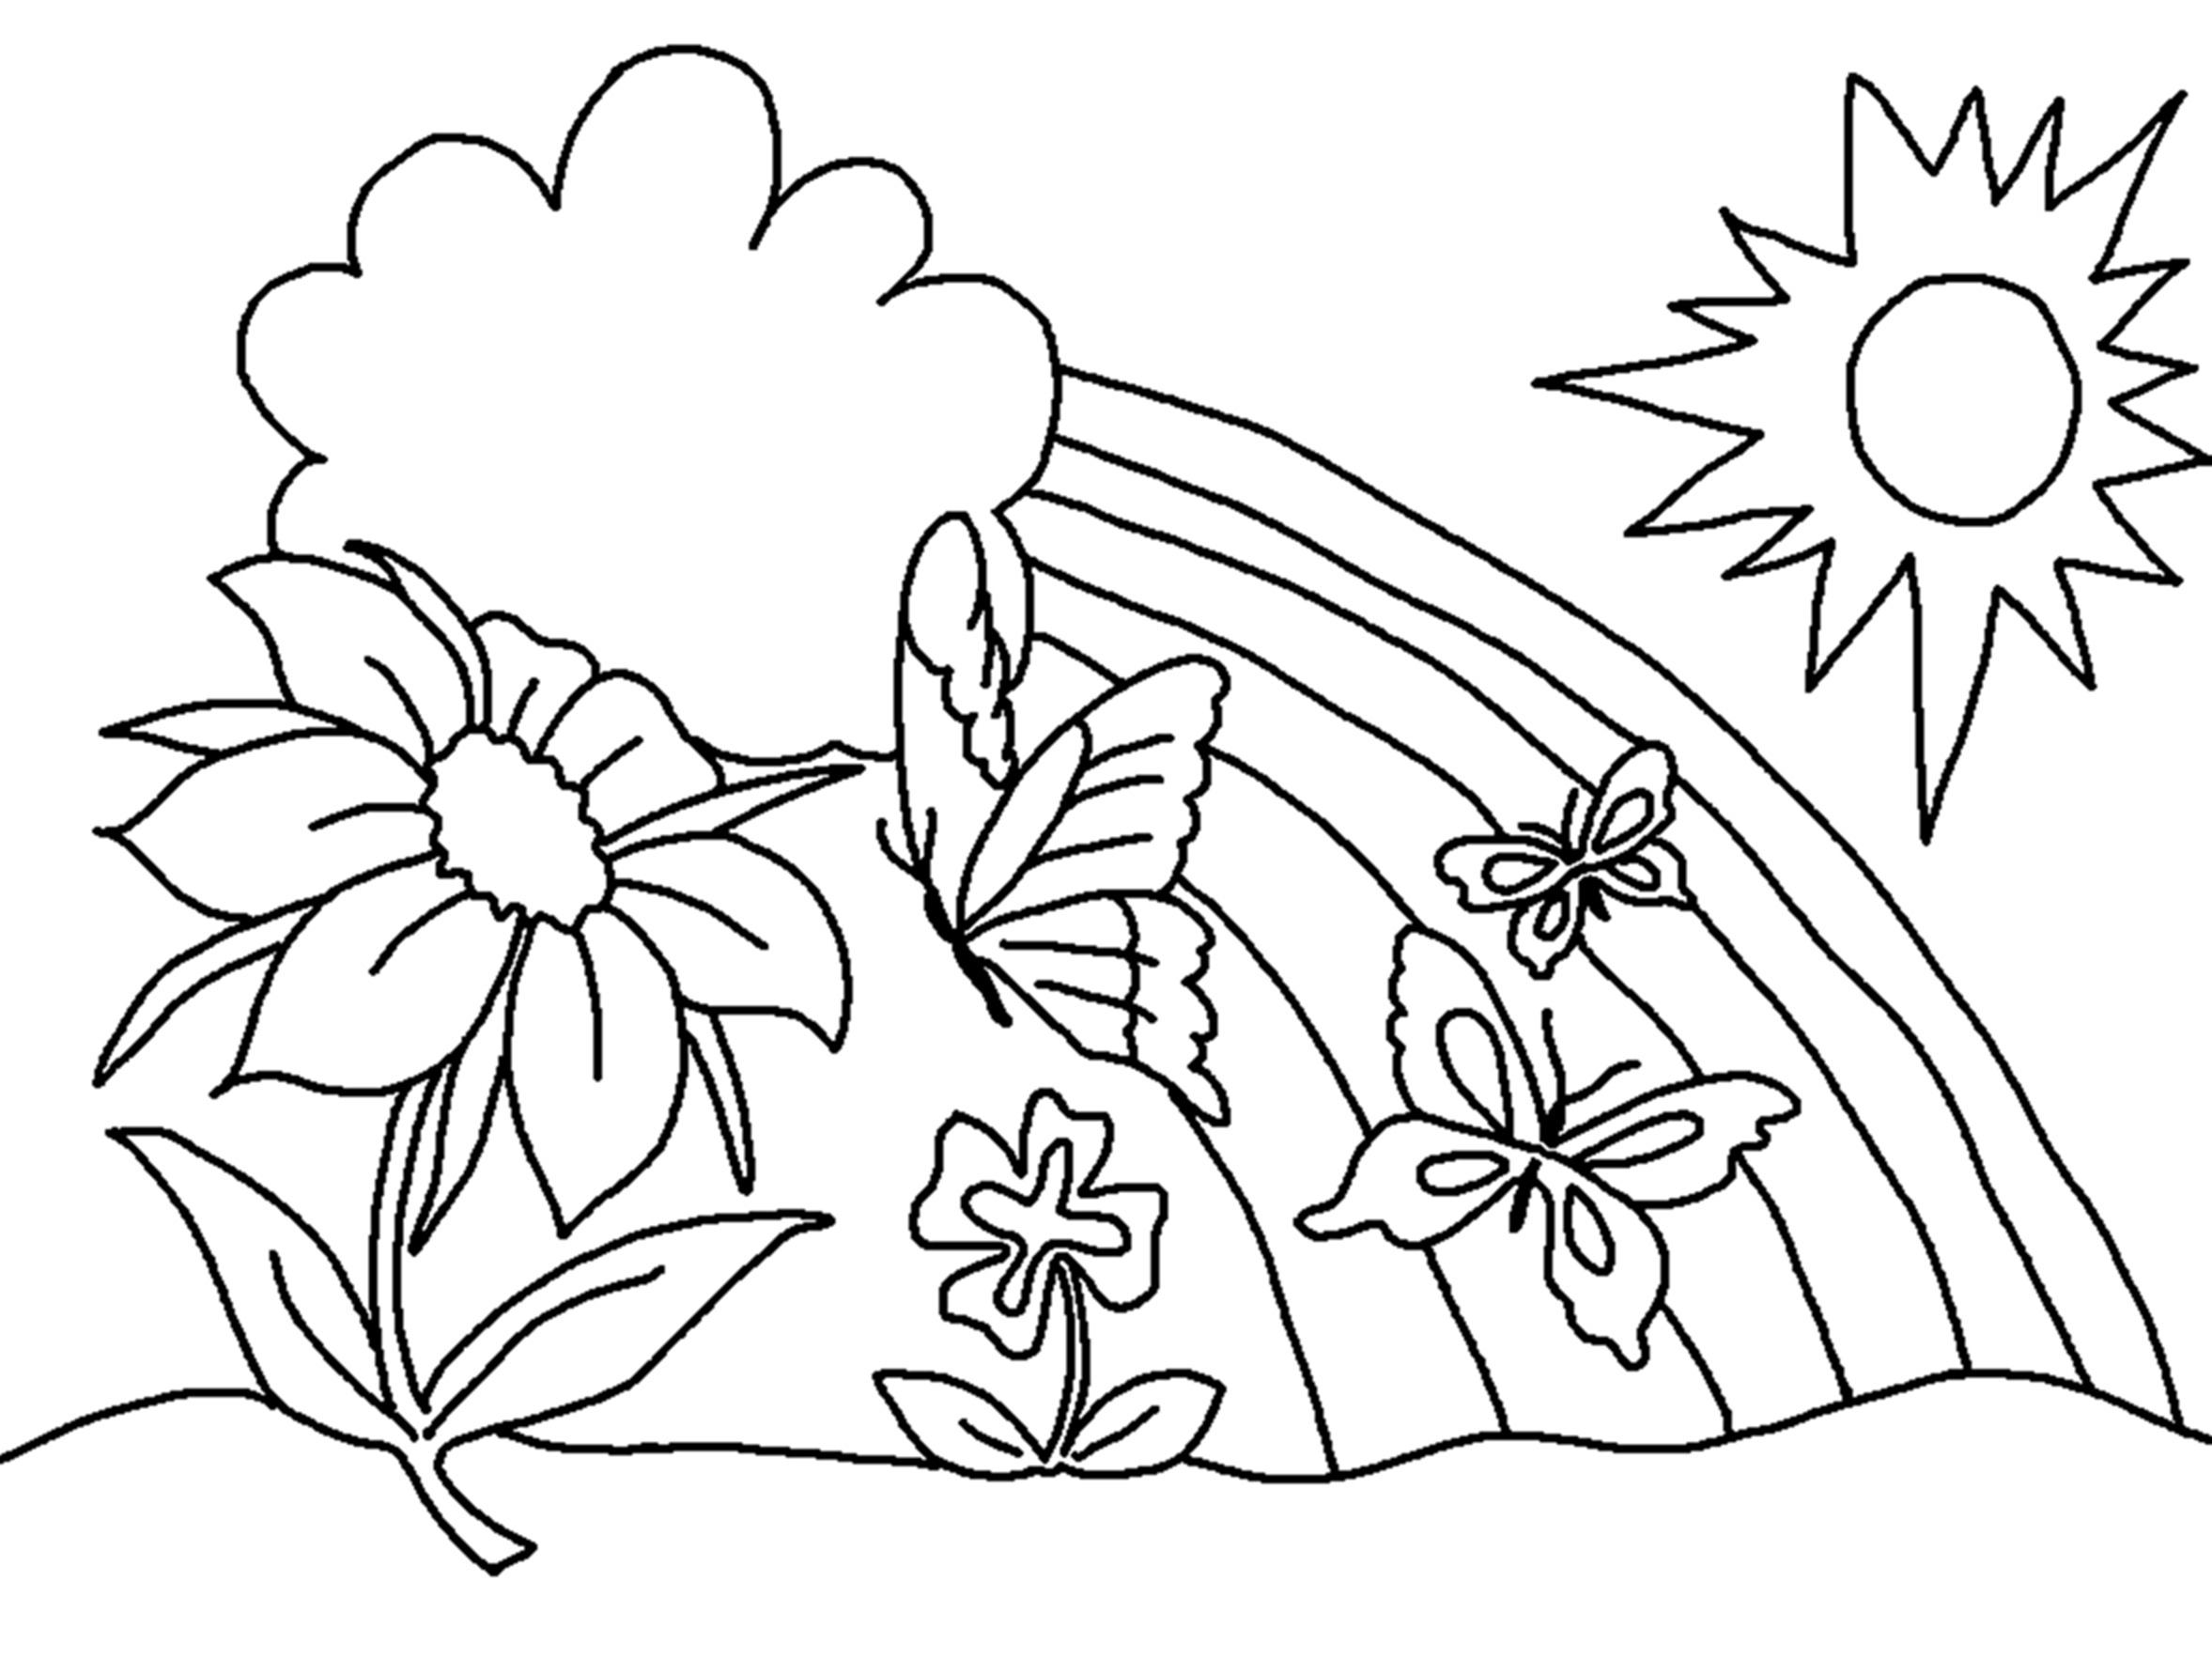 flower printable coloring pages flower printable coloring pages pages coloring printable flower